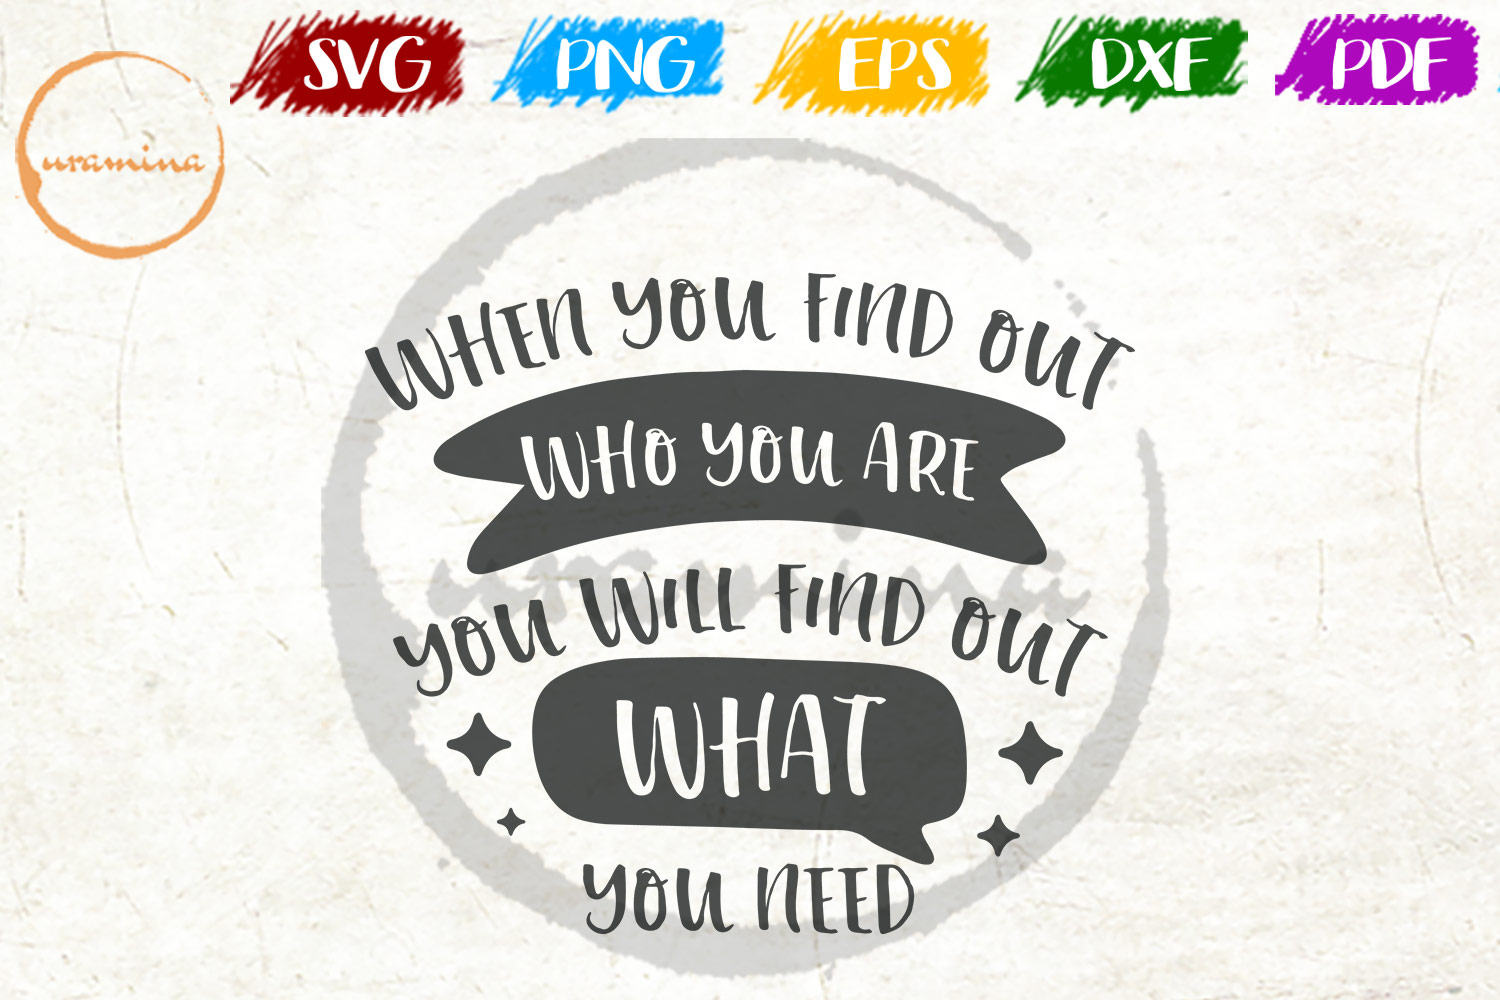 Download Free When You Find Out Who You Are You Will Graphic By Uramina for Cricut Explore, Silhouette and other cutting machines.